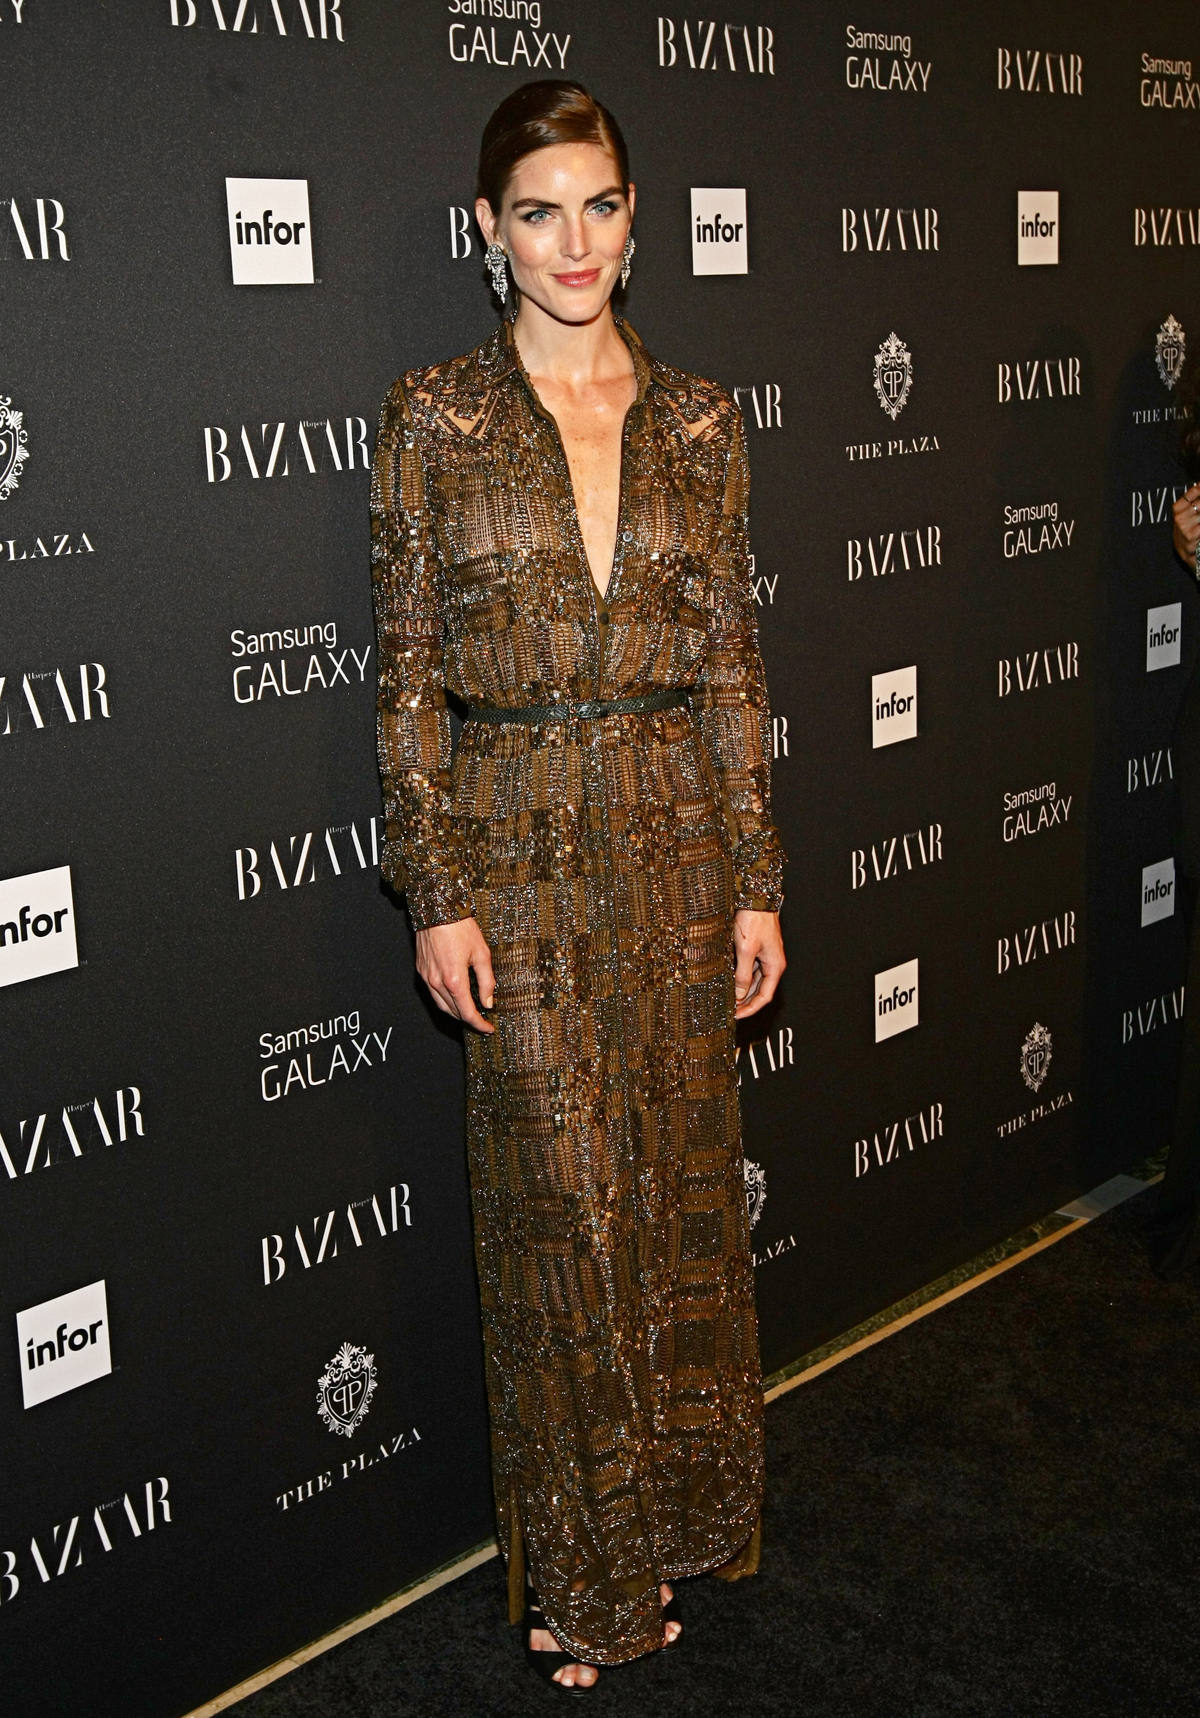 Hilary Rhoda at the Harper's Bazaar Icons Party